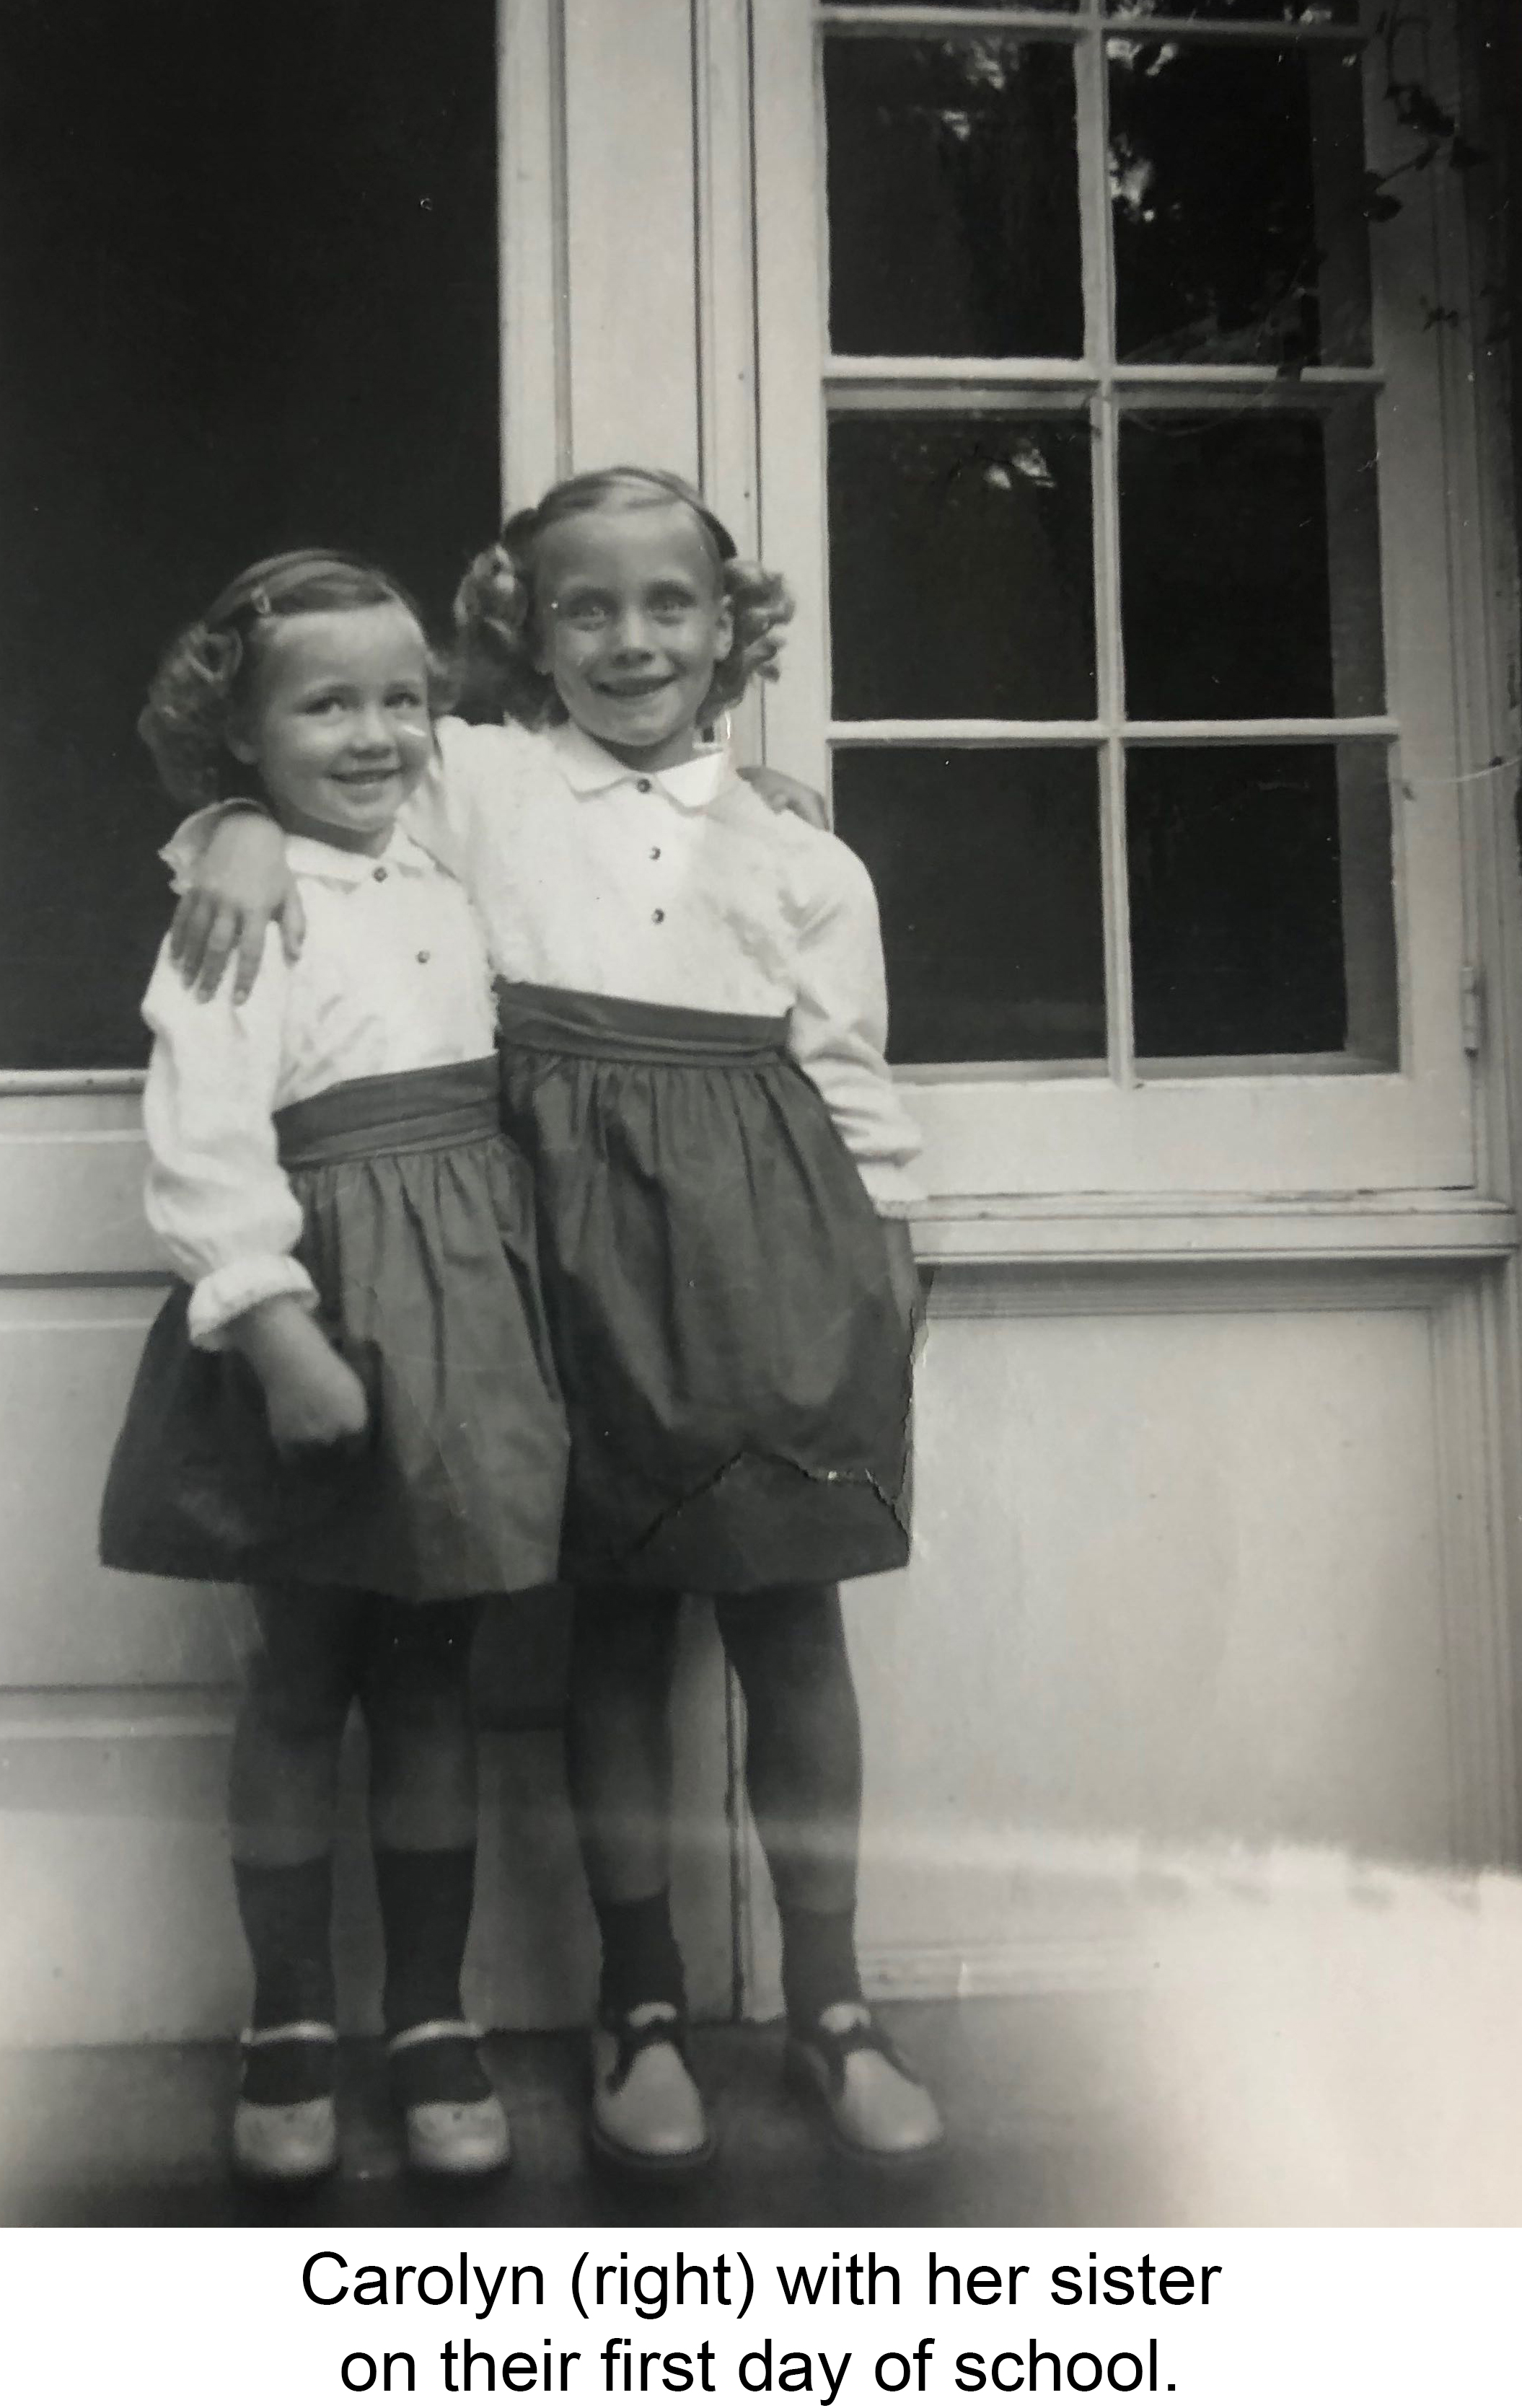 Carolyn with her sister on their first day of school